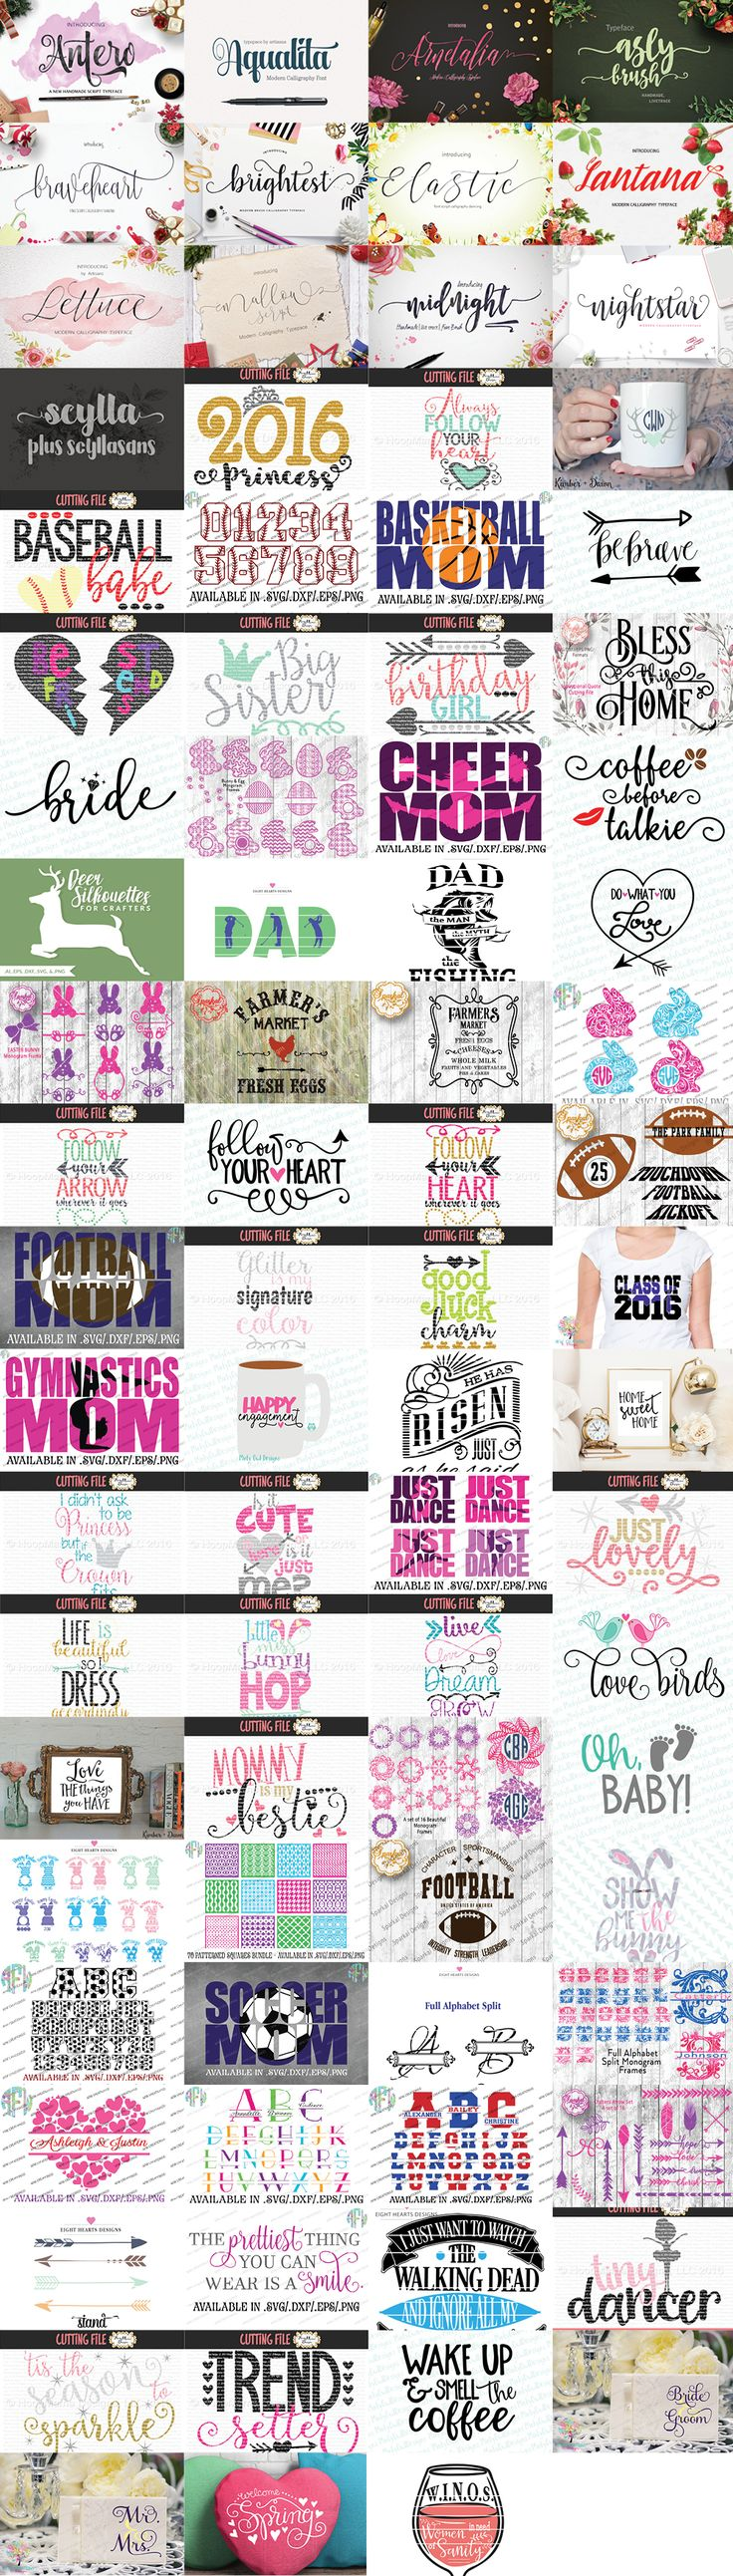 This craftalicious bundle is packed full of goodies. 13 awesome PUA encoded fonts (yes, accessible to everyone!) and over 65 amazing craft files. Grab yours quick! As always, this pack comes with our complete license. Which allows you to use everything for commercial use.